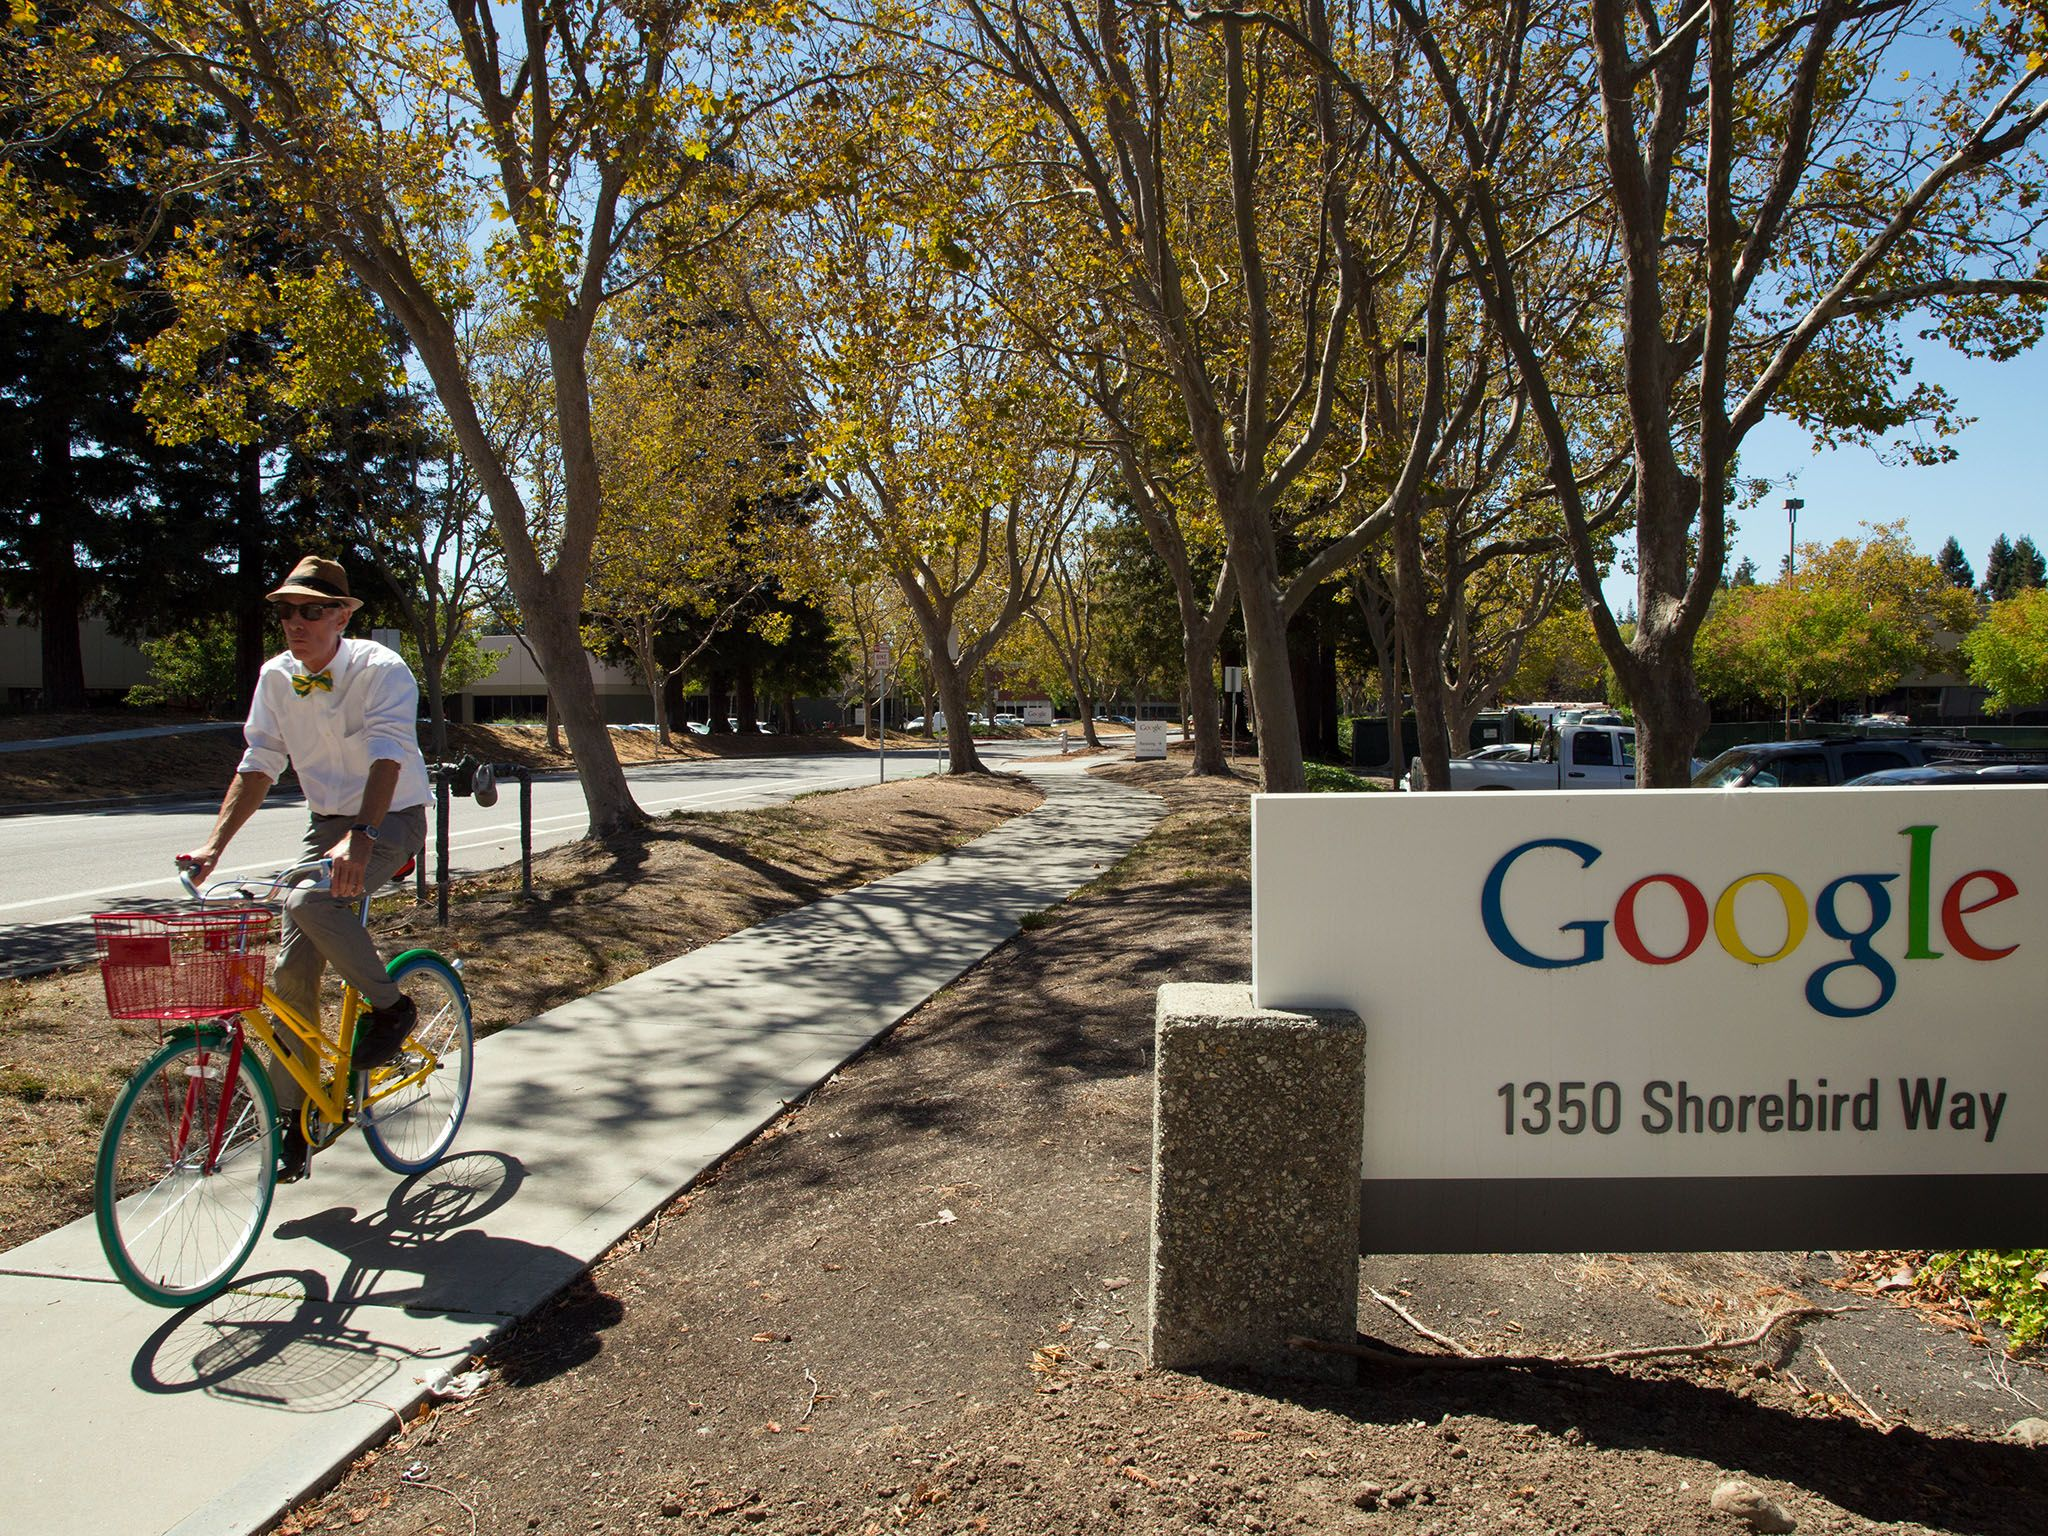 Mountain View, California: Bill Nye riding a Google bike through the Google campus. This image is... [Фото дня - Ноябрь 2015]